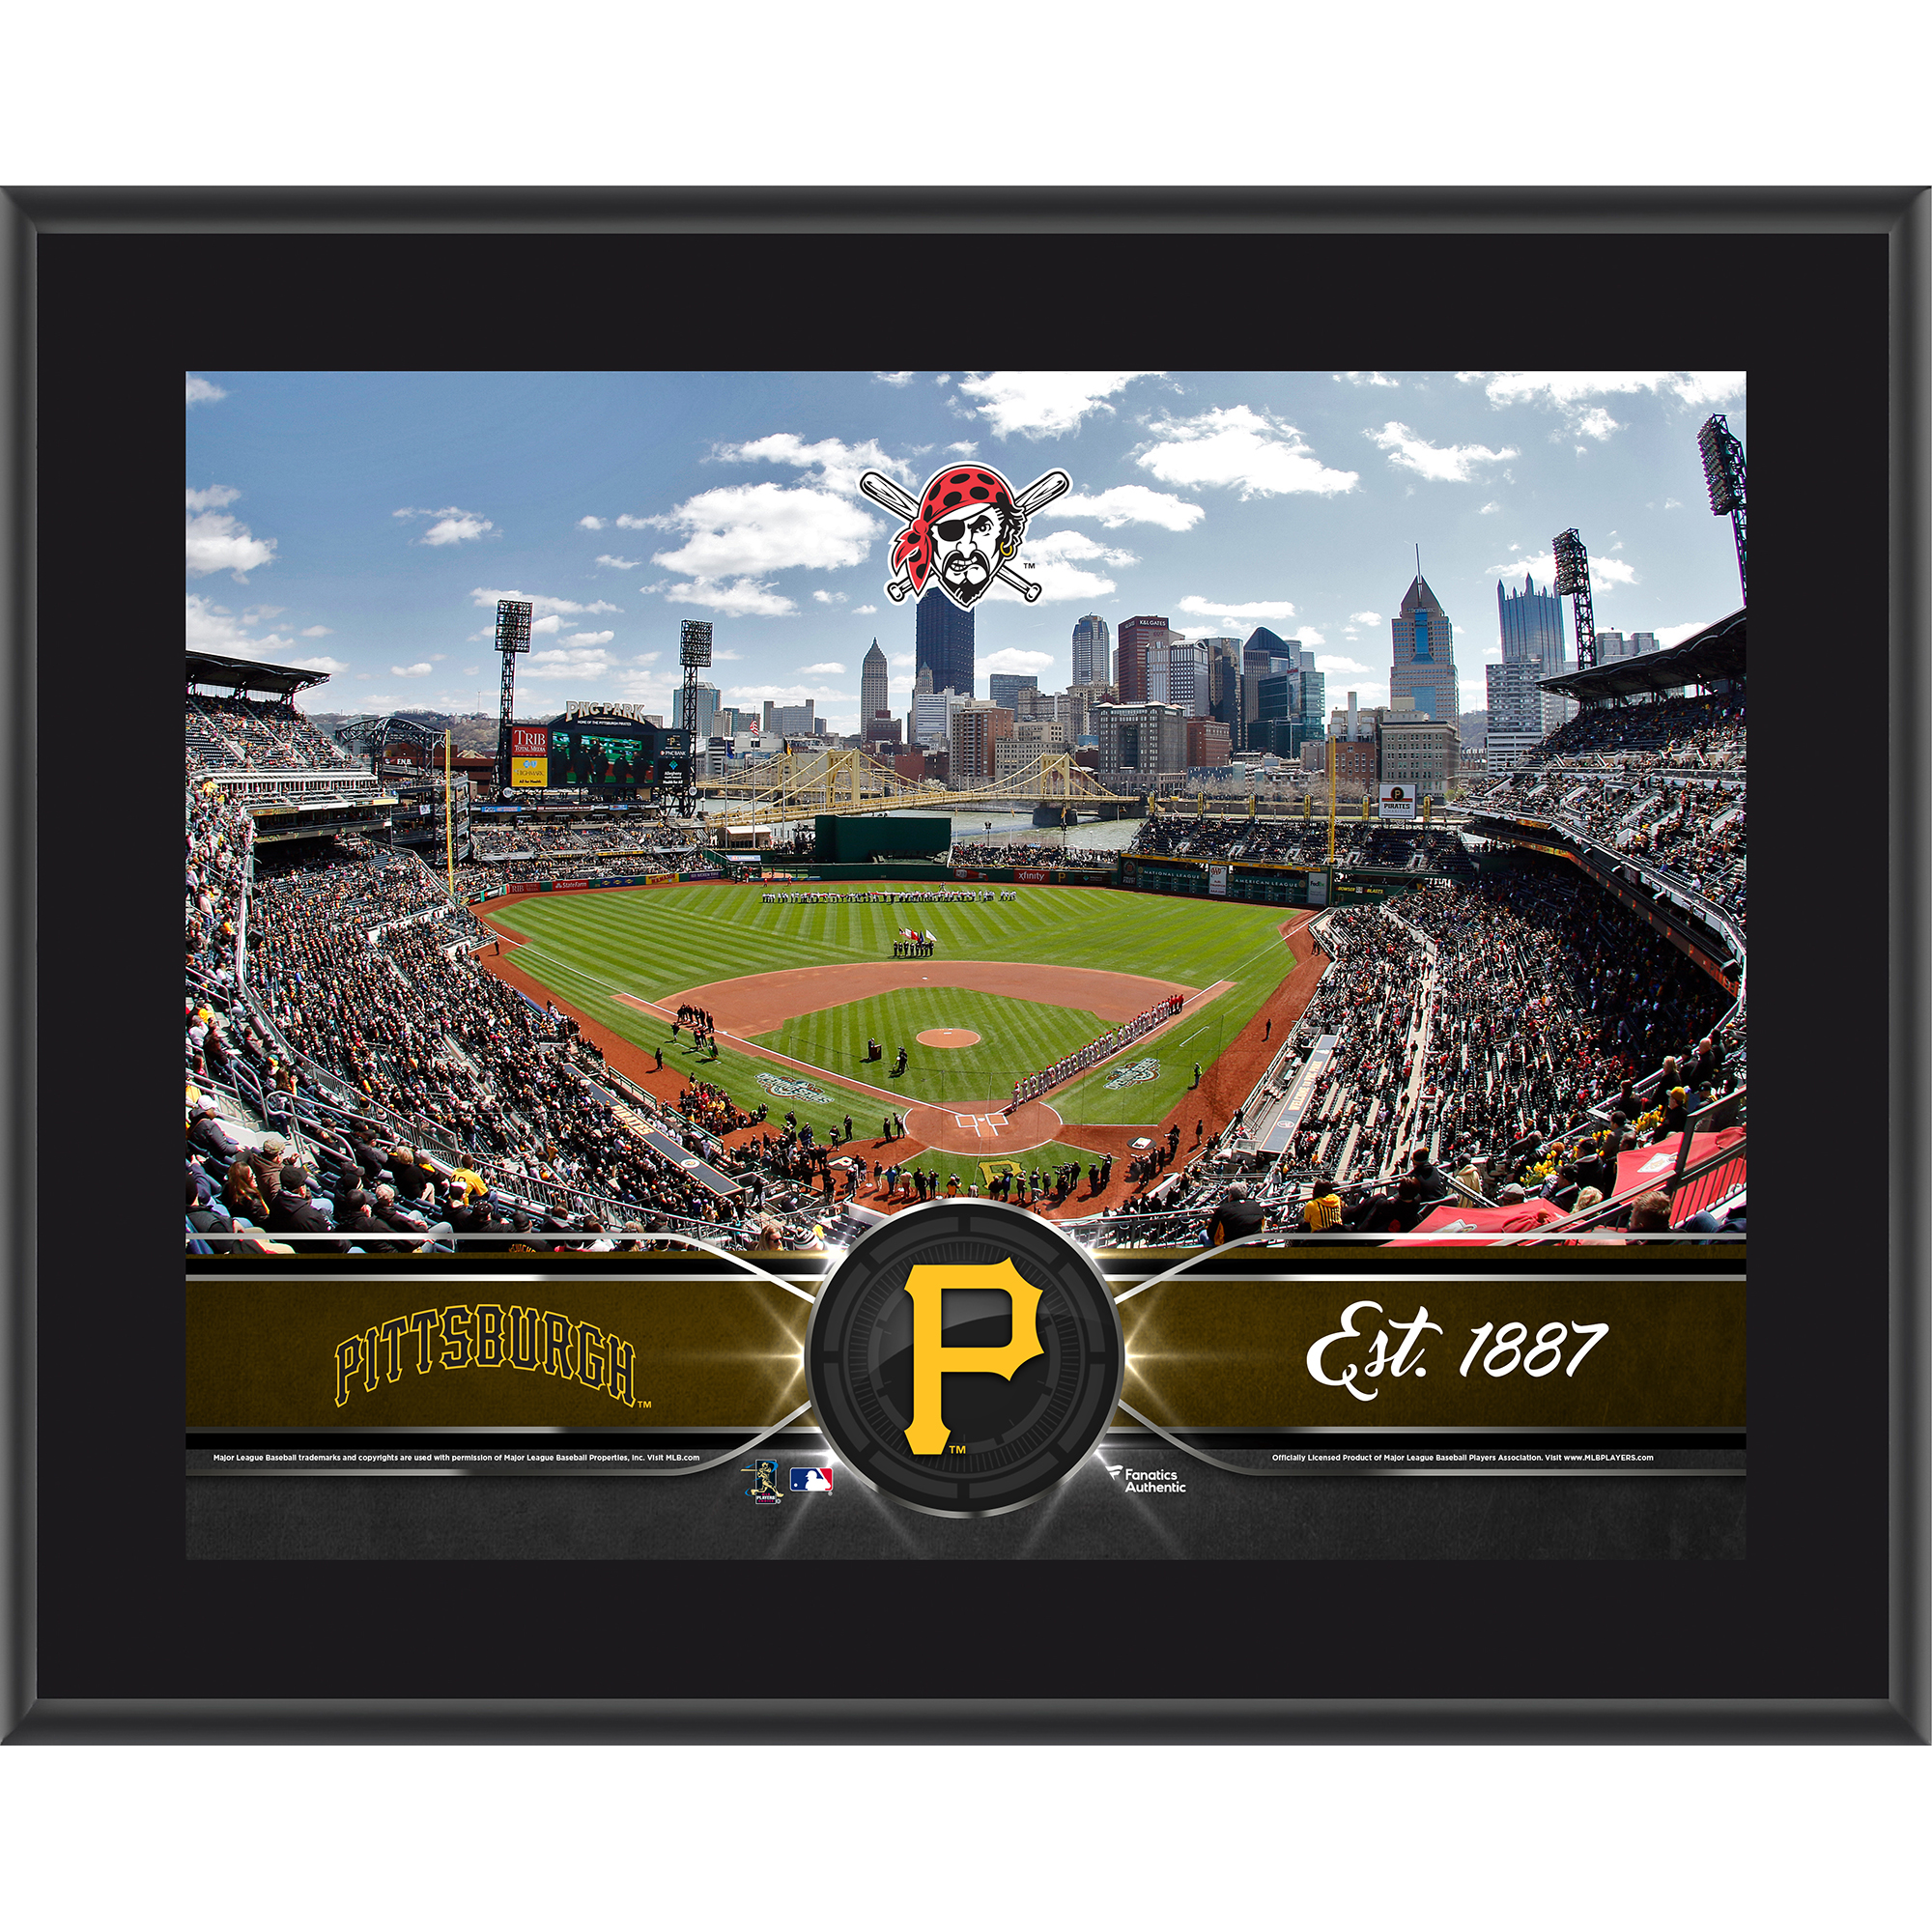 "Pittsburgh Pirates Fanatics Authentic 10.5"" x 13"" Sublimated Team Plaque - No Size"